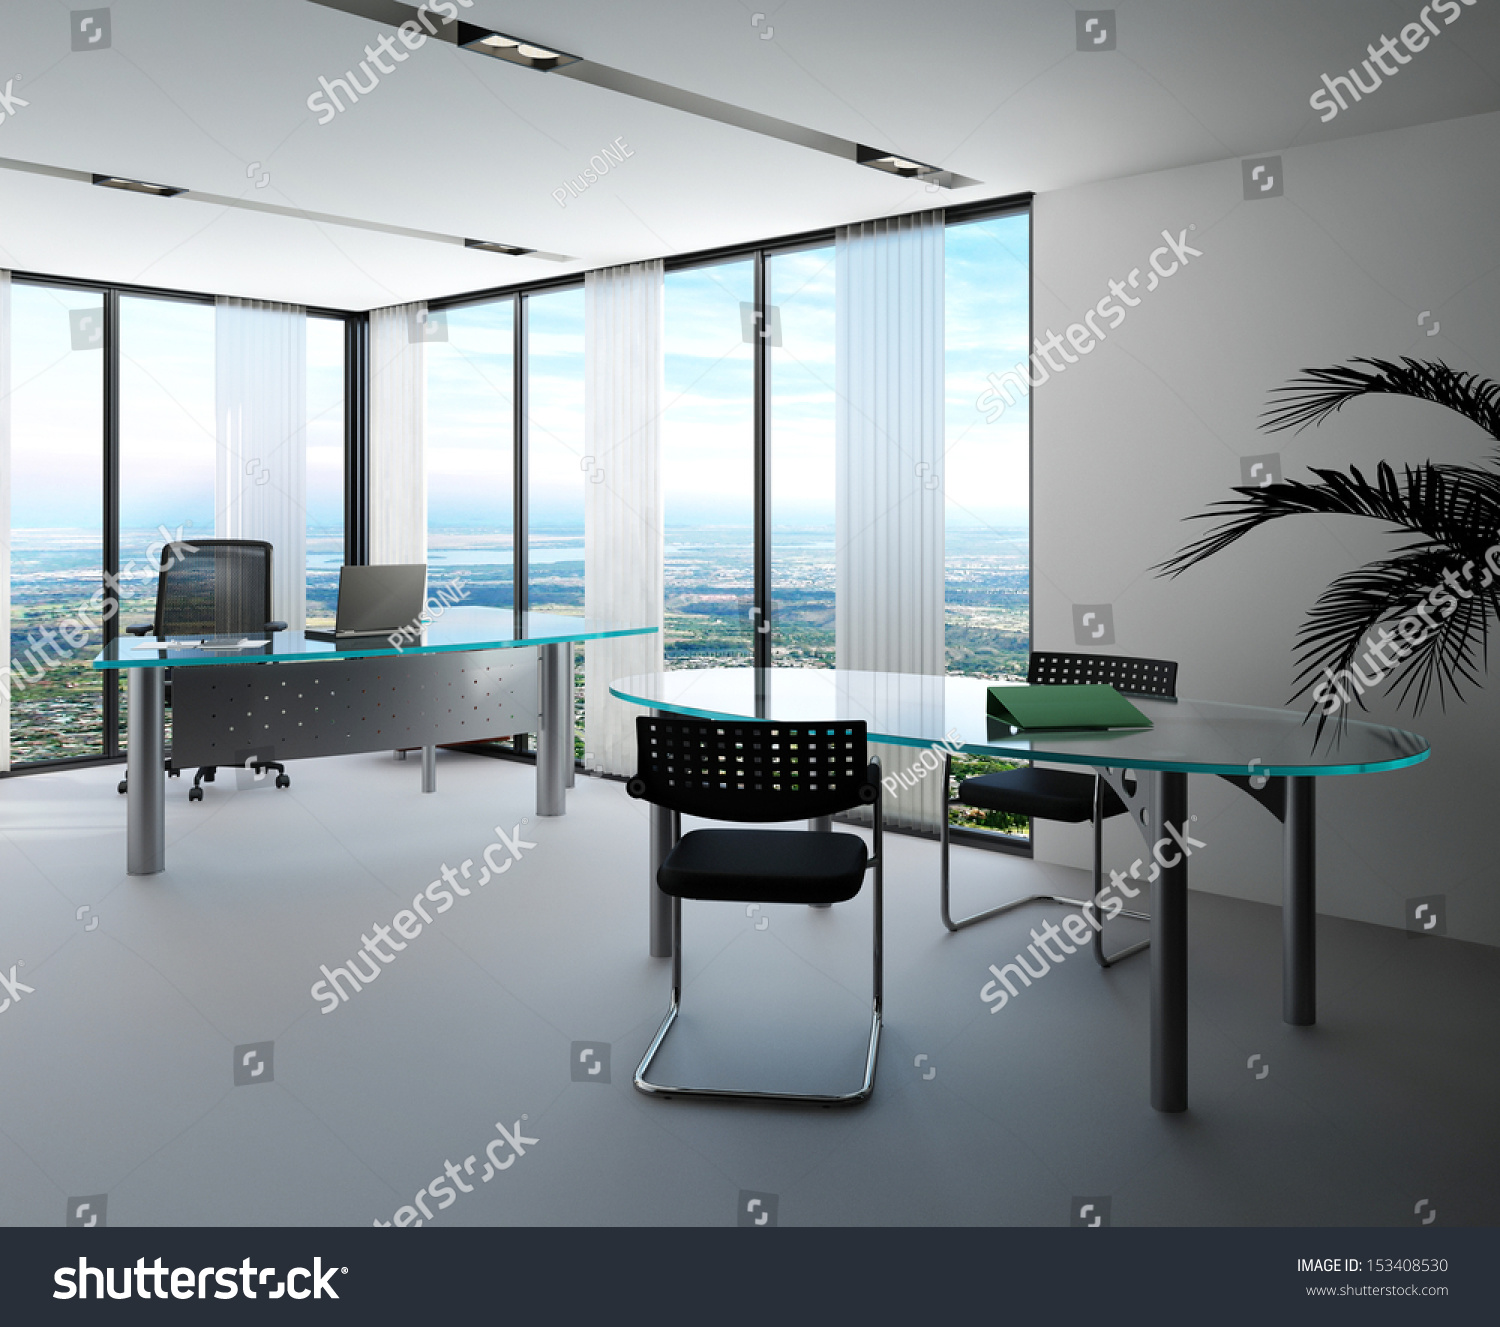 Interior office windows - Modern Office Interior With Huge Windows With Panoramic View